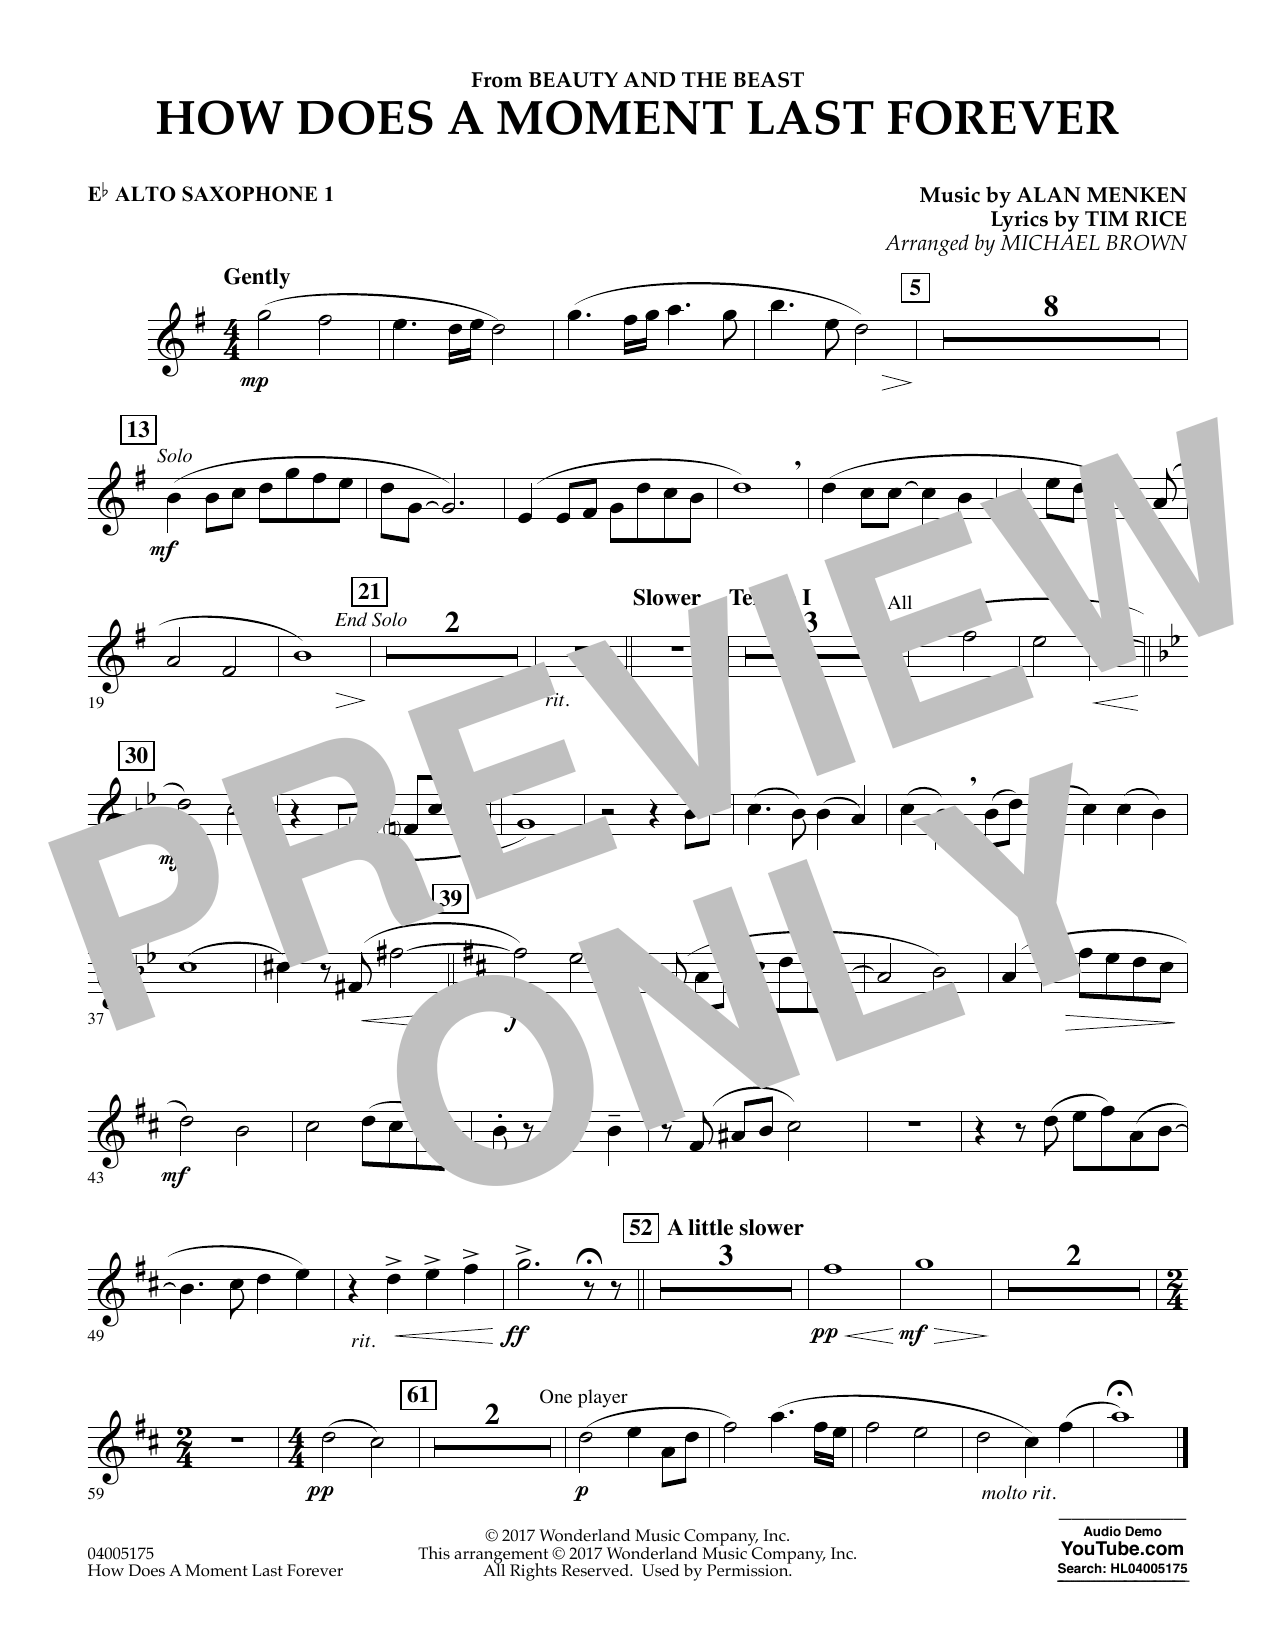 How Does a Moment Last Forever (from Beauty and the Beast) - Eb Alto Saxophone 1 (Concert Band)